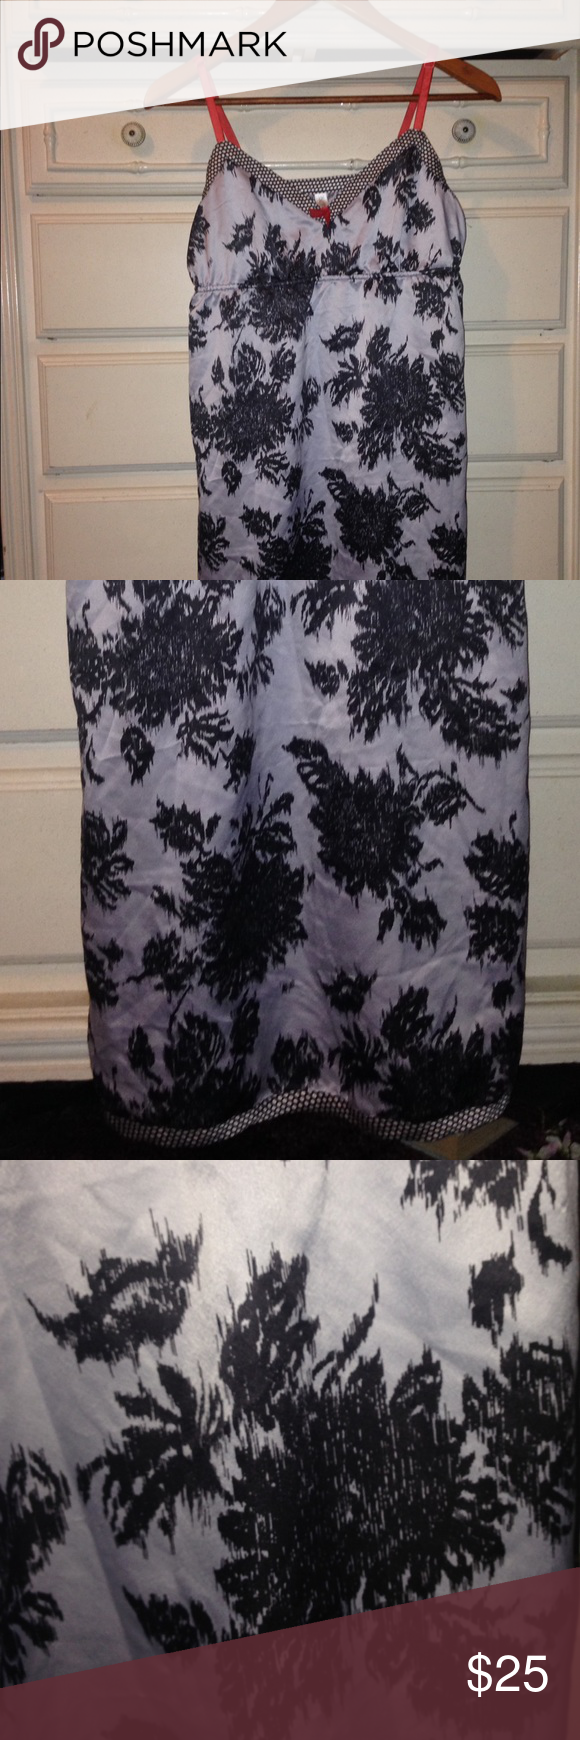 Silk nightie Silk nightie with black and white pattern and orange straps. Cute polka dot pattern on hem. Cute and comfy. No damage. Would keep for myself but doesn't fit anymore. Intimates & Sleepwear Chemises & Slips